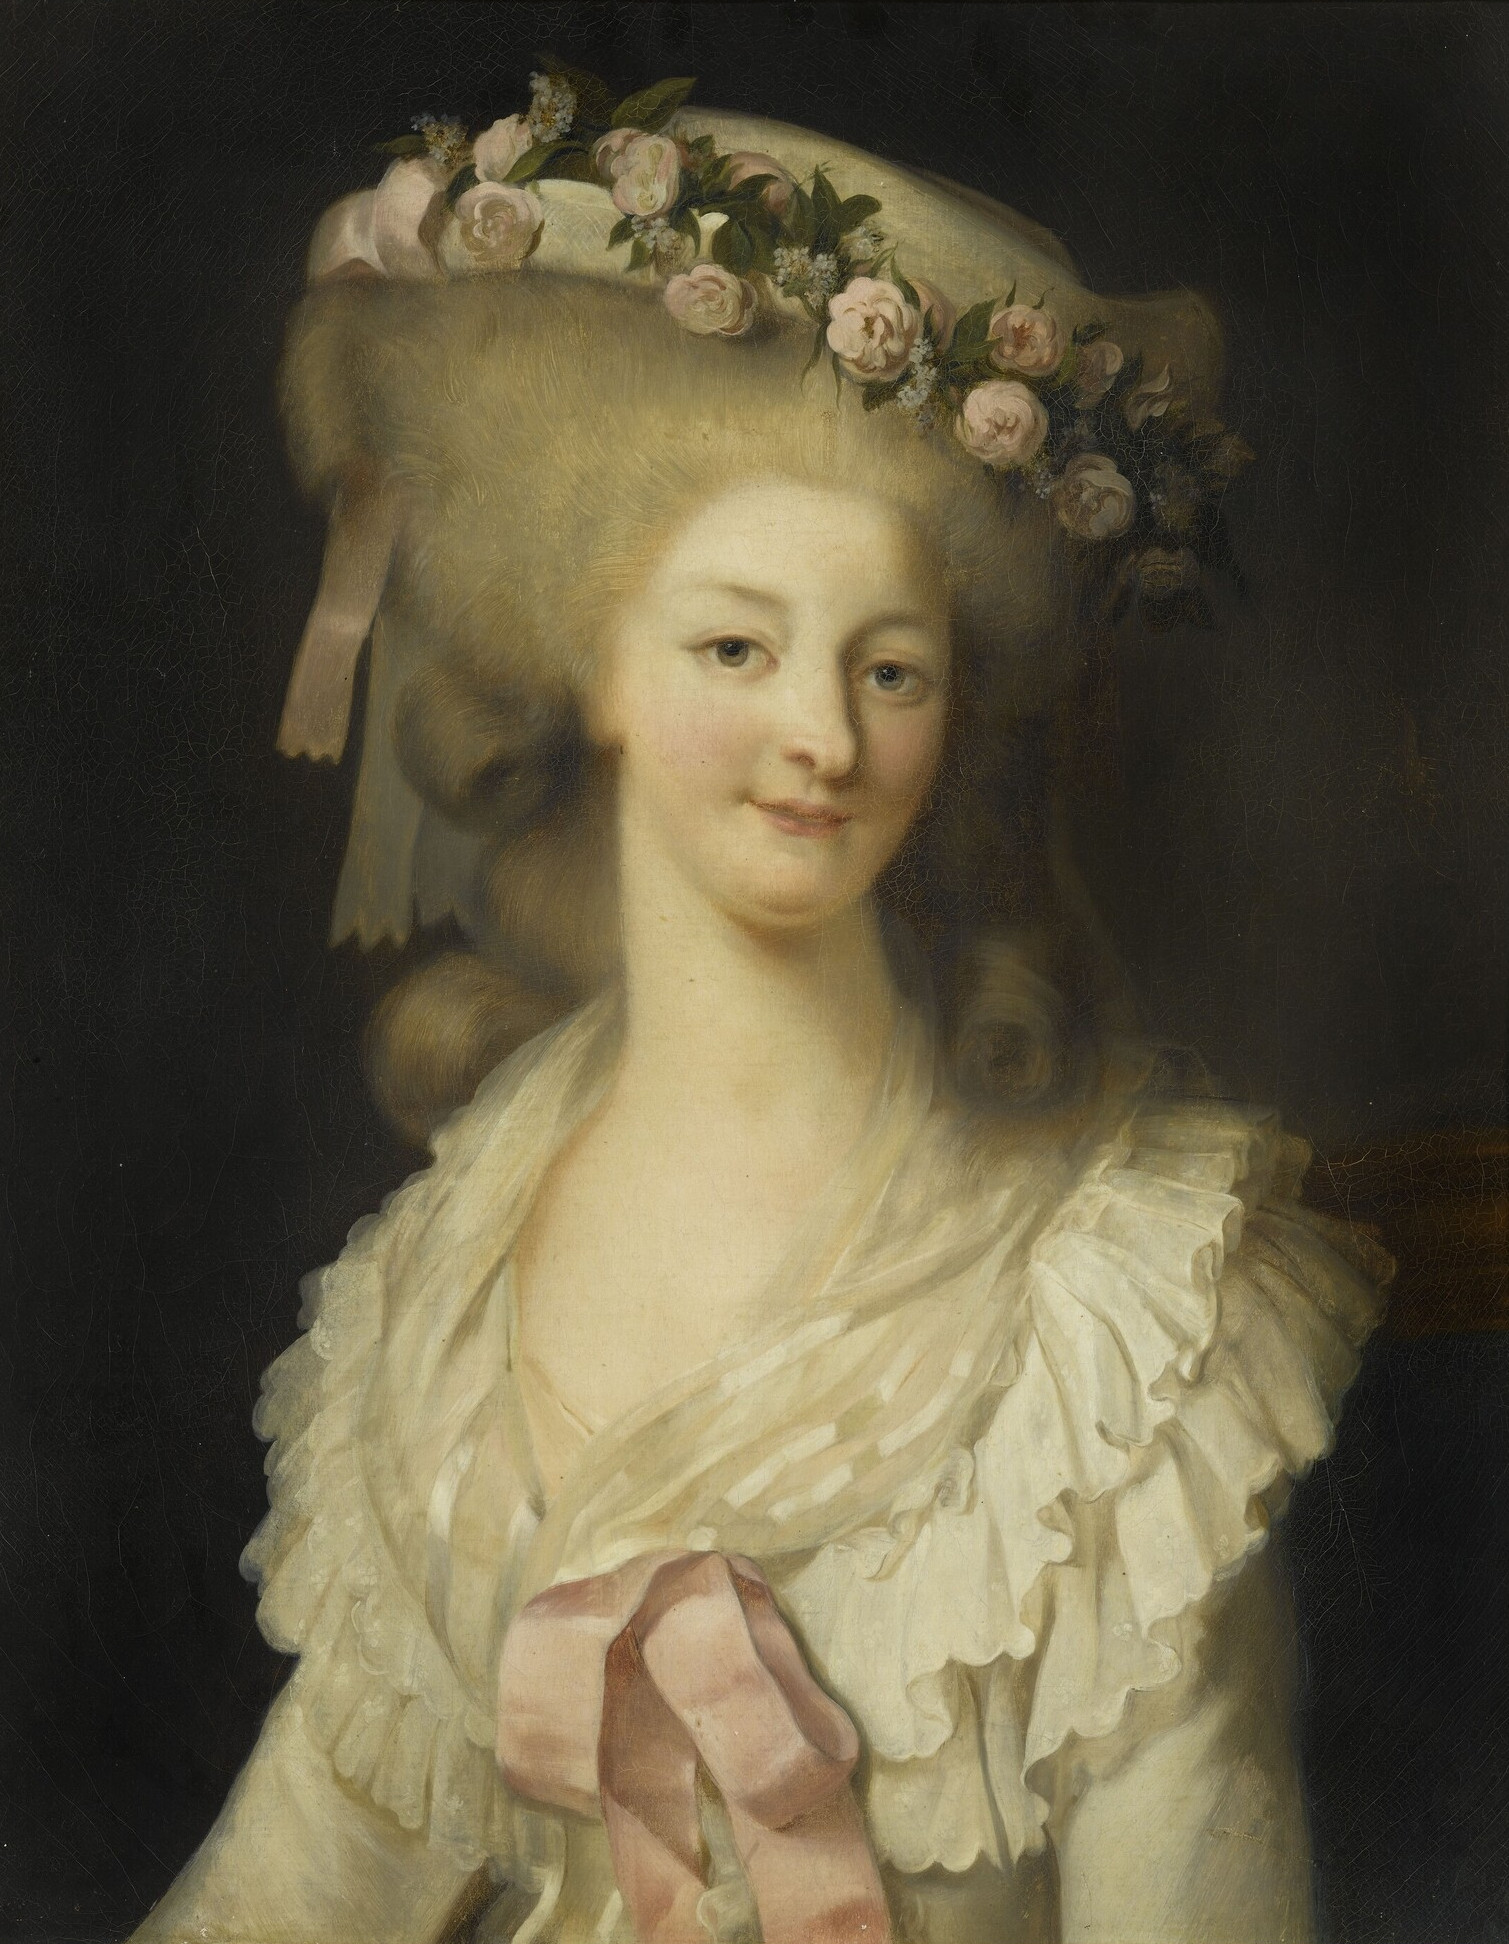 https://upload.wikimedia.org/wikipedia/commons/a/a9/Rioult_-_The_Princess_of_Lamballe.jpg